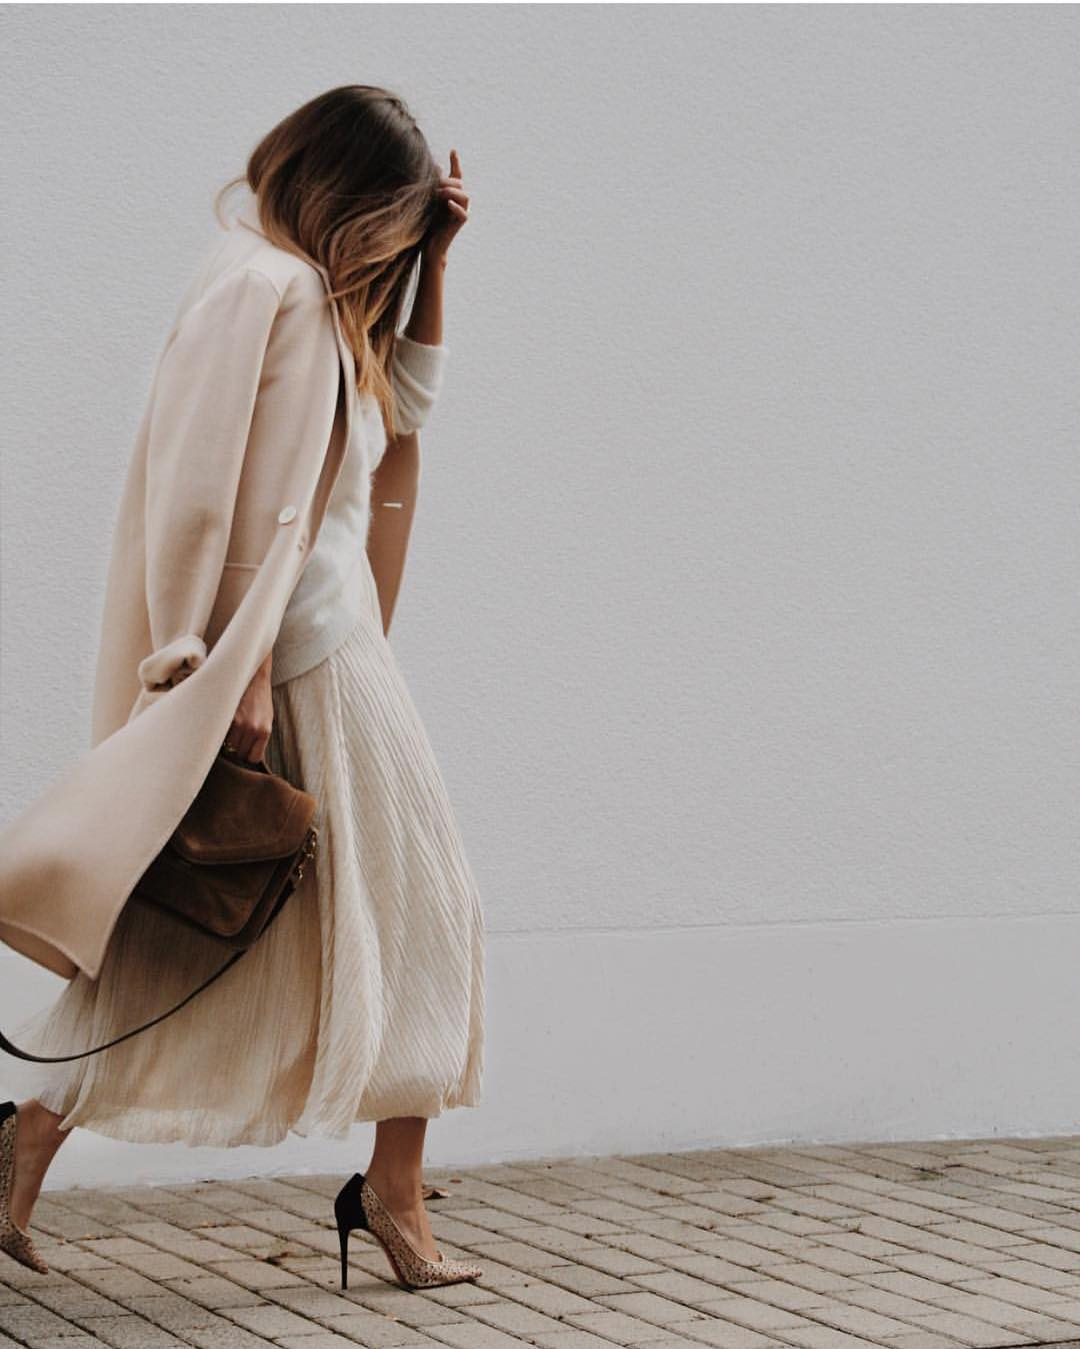 All White Fall OOTD: Coat, Mohair Sweater And Pleated Maxi Skirt 2020